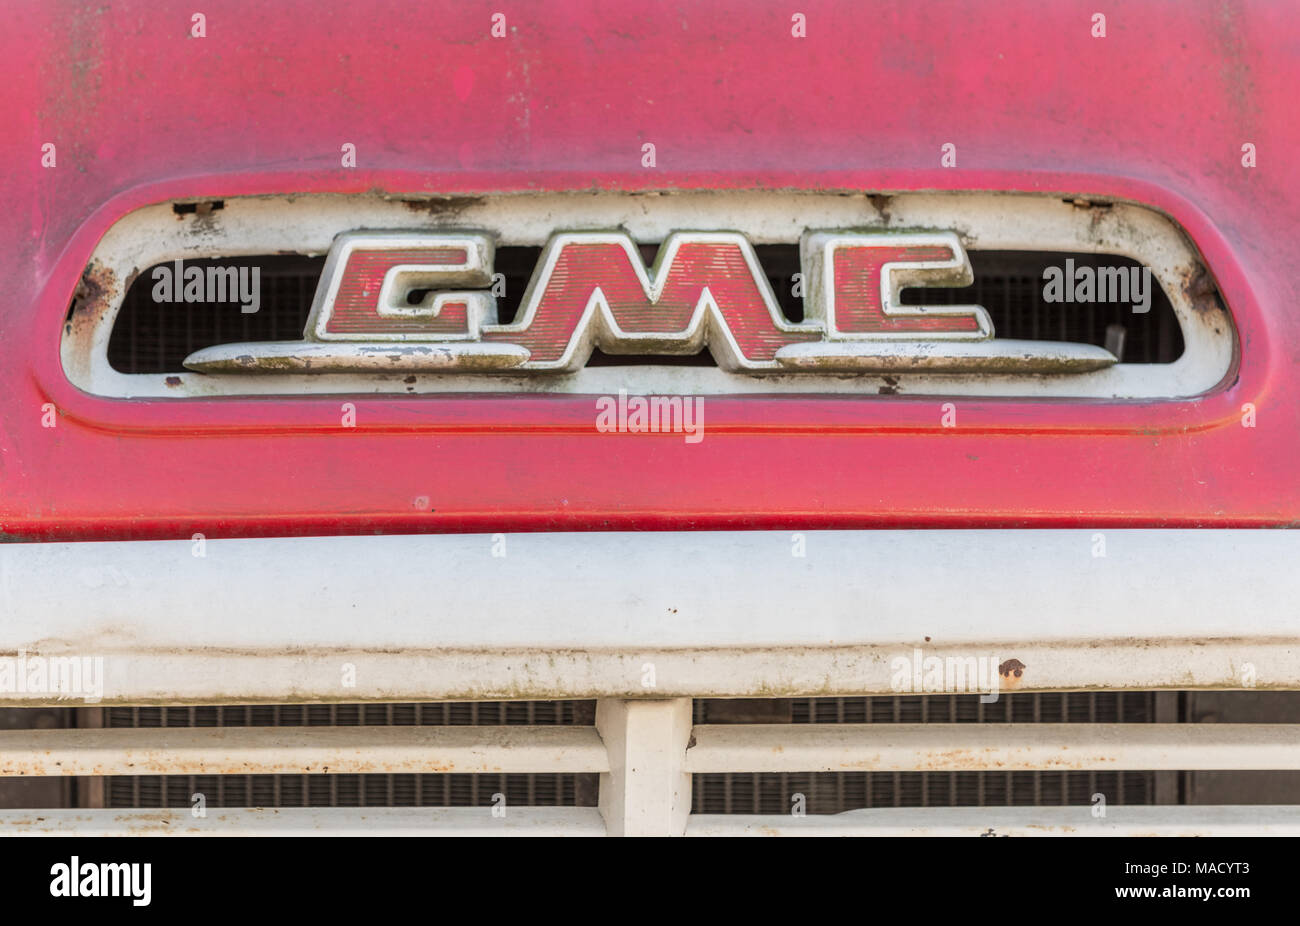 detail image of the GMC logo on an antique truck - Stock Image